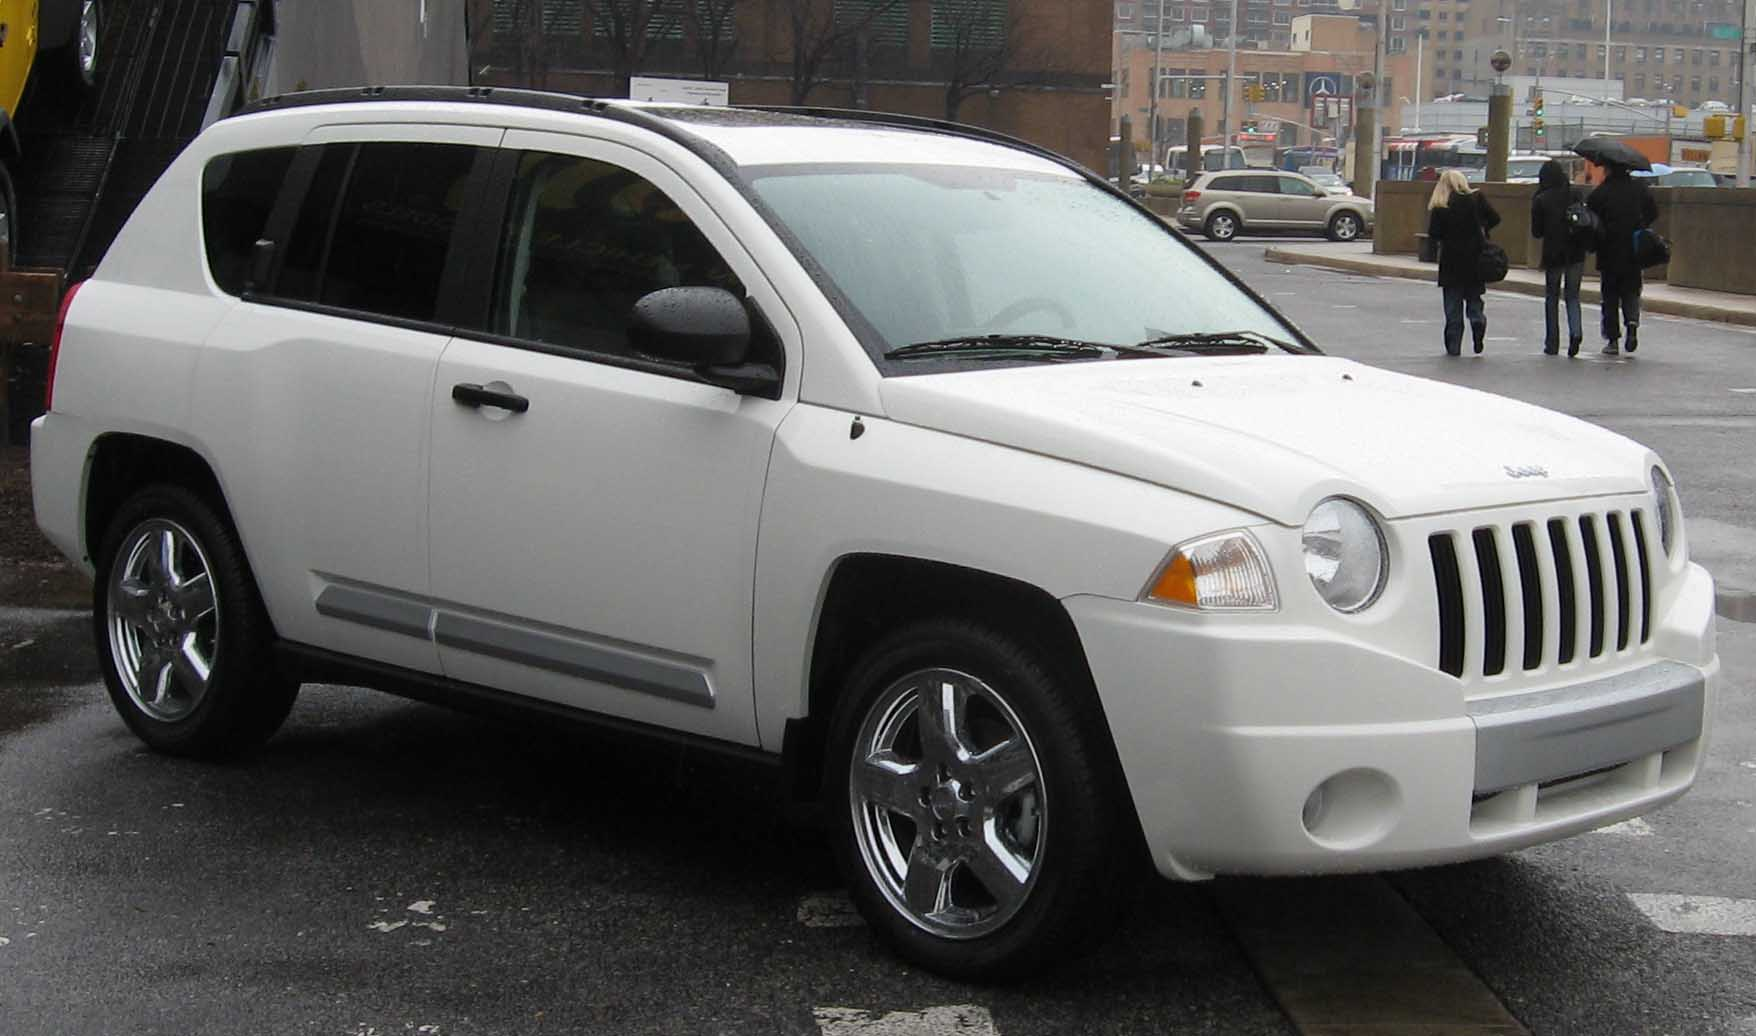 White Jeep Patriot >> File:2008 Jeep Compass.jpg - Wikimedia Commons